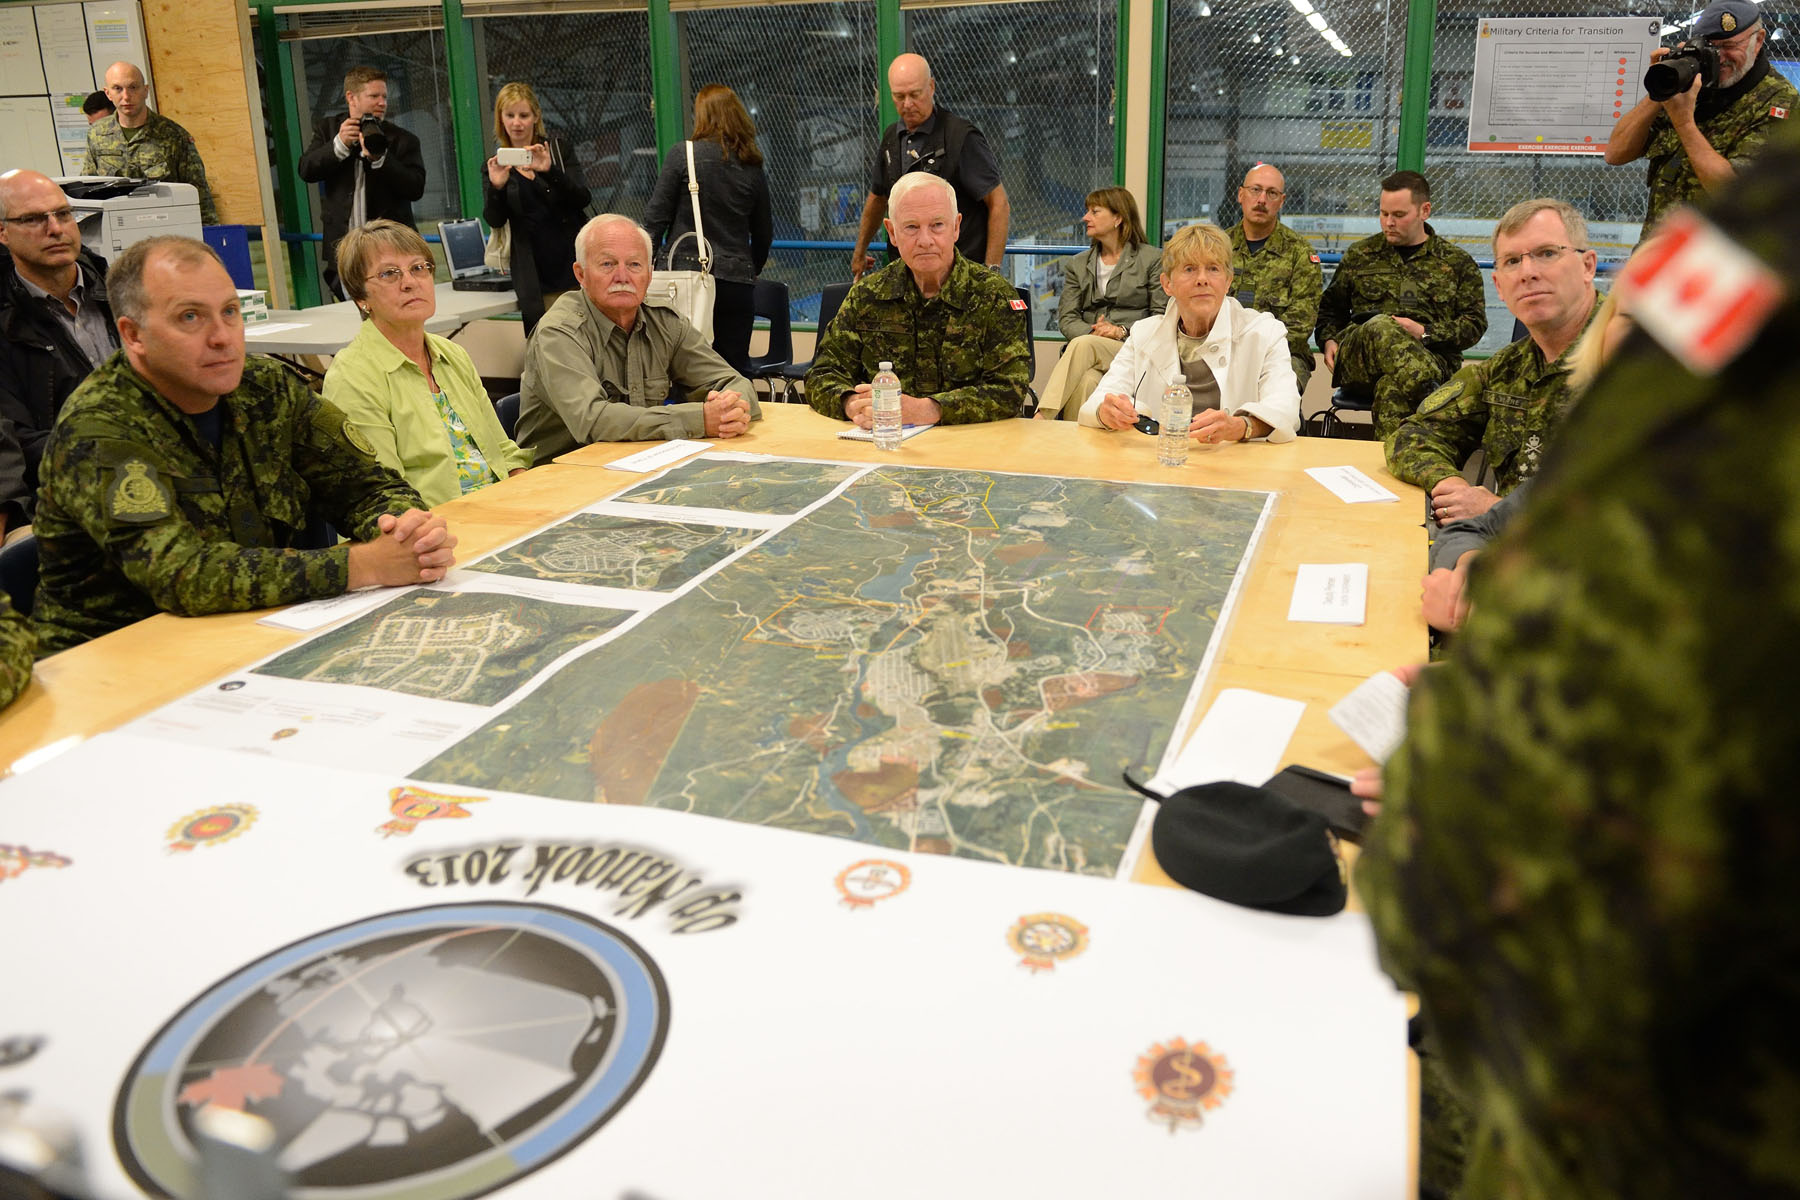 Their Excellencies attended a briefing about this year's military exercise which will take place in four distinct geographical locations: Whitehorse,